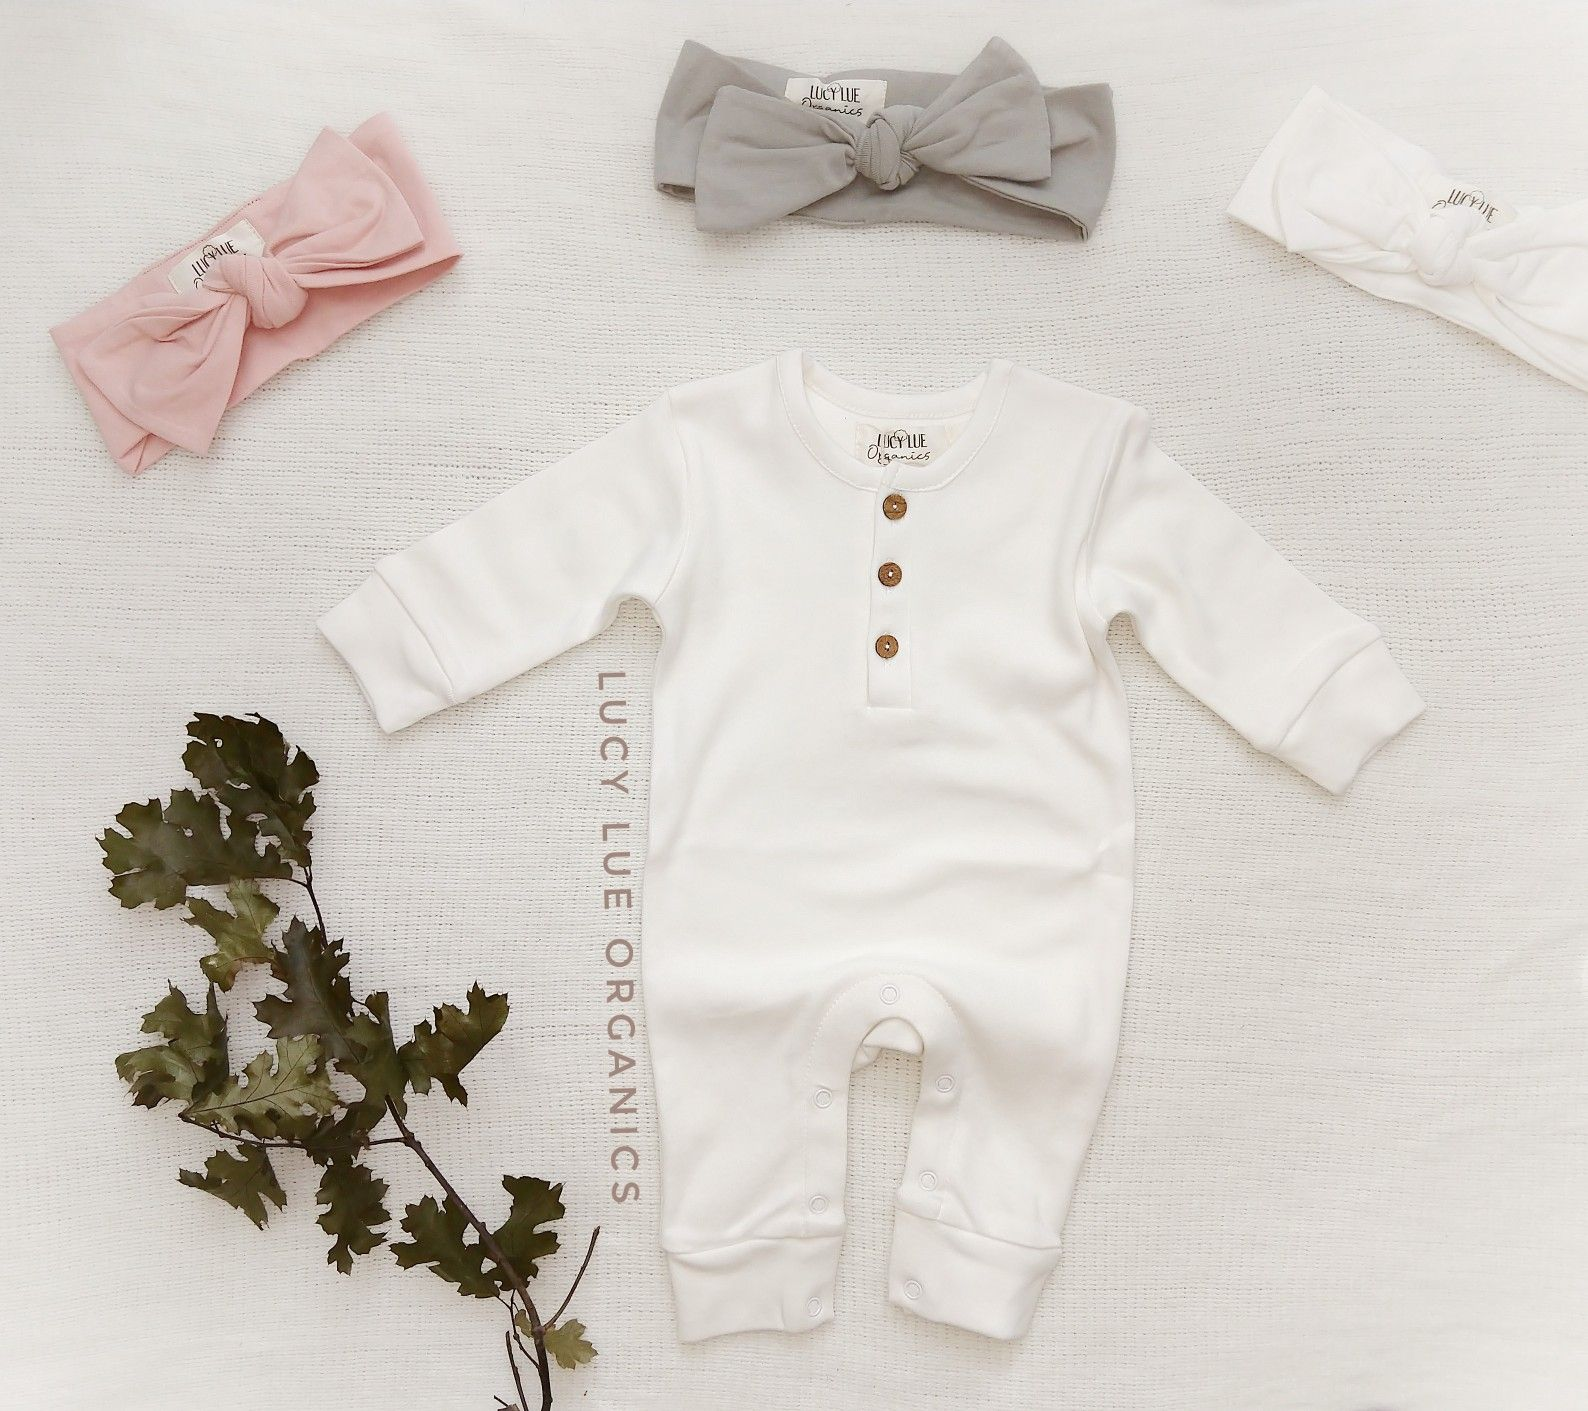 The softest baby clothes ever❤️ Shop cozy organic cotton baby